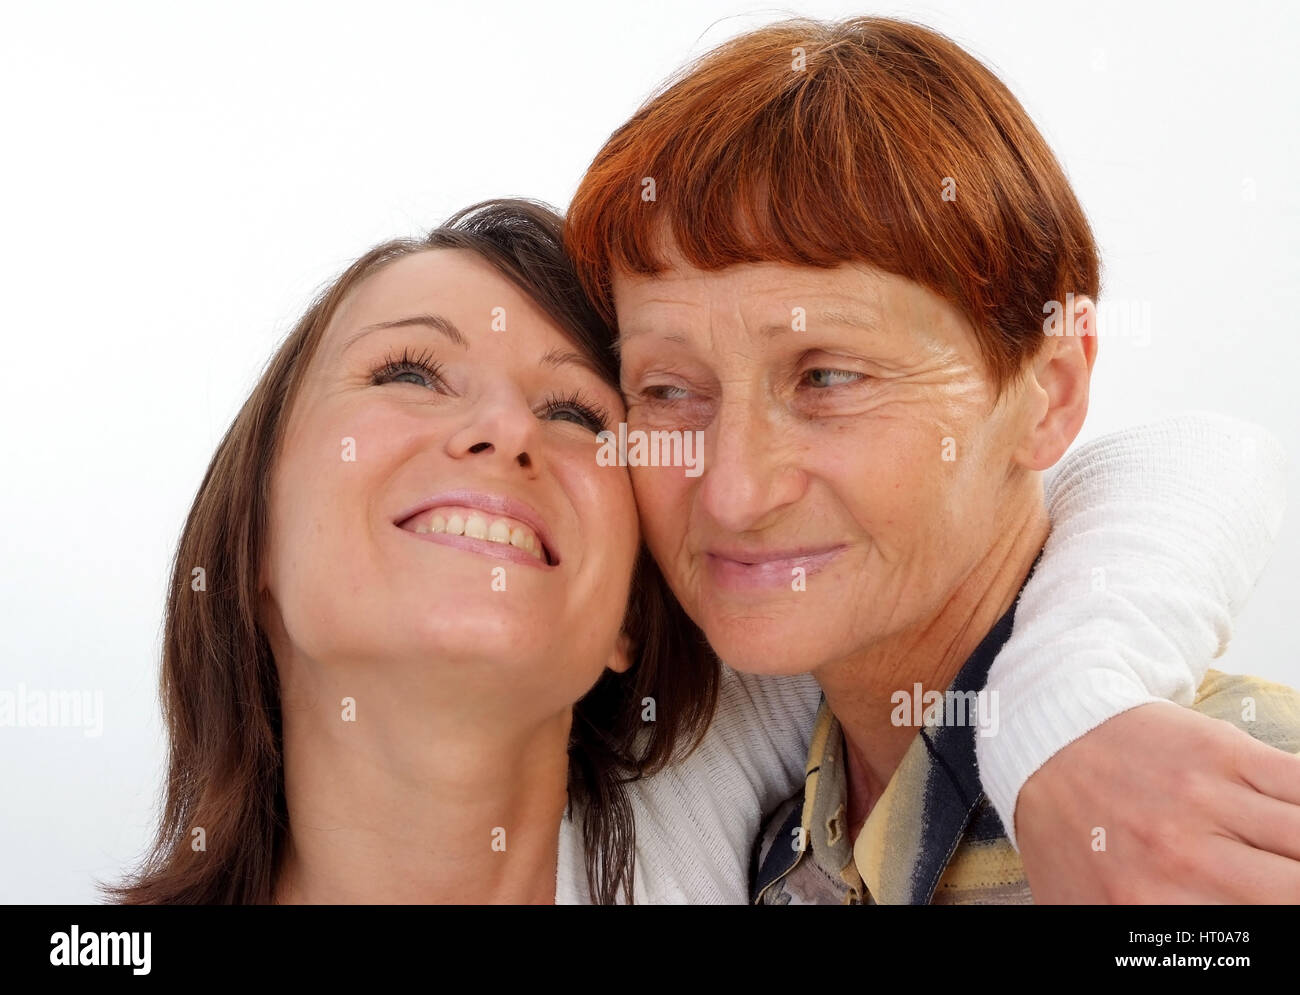 Mutter, 60 Jahre, mit Tochter, 30 Jahre - mother, 60 years old, with daughter, 30 years old Stock Photo